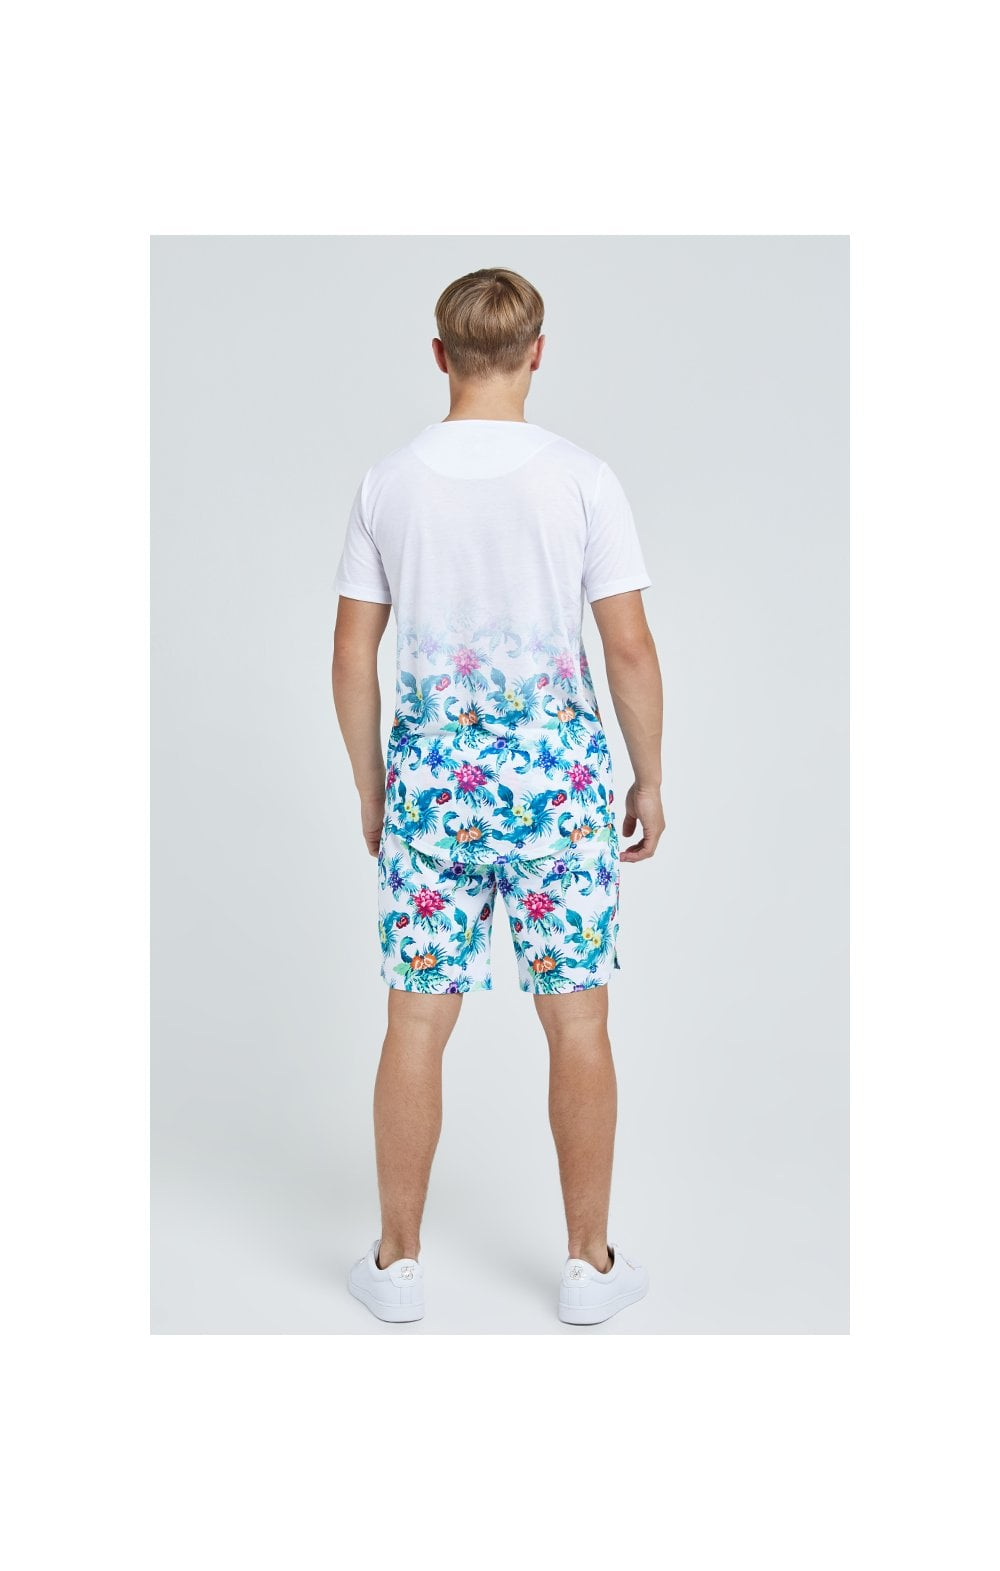 Illusive London Swim Shorts - White & Floral (7)